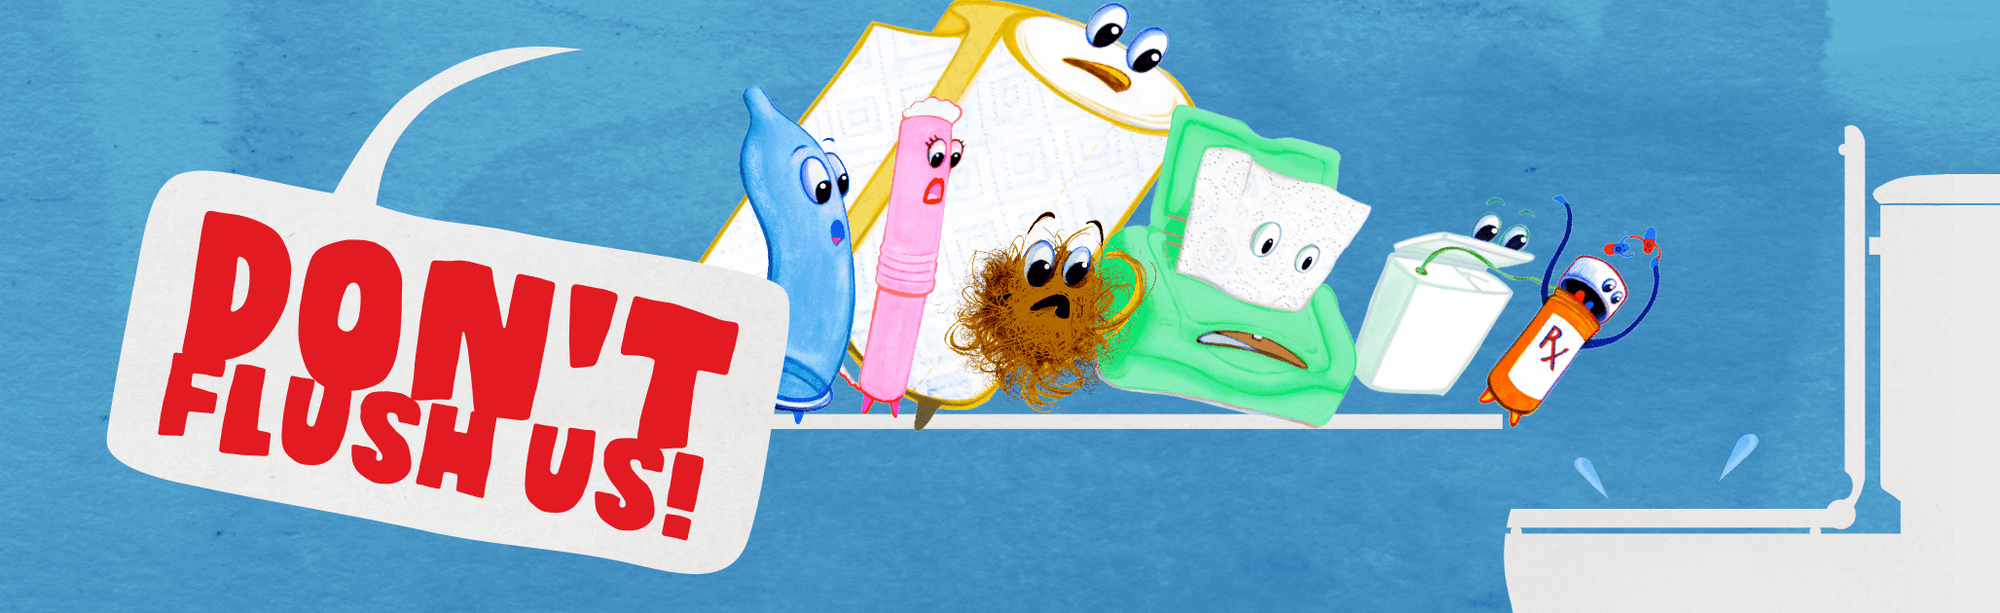 Cartoon image of unflushable items: prescription drug bottle, floss, wipes, hair, etc